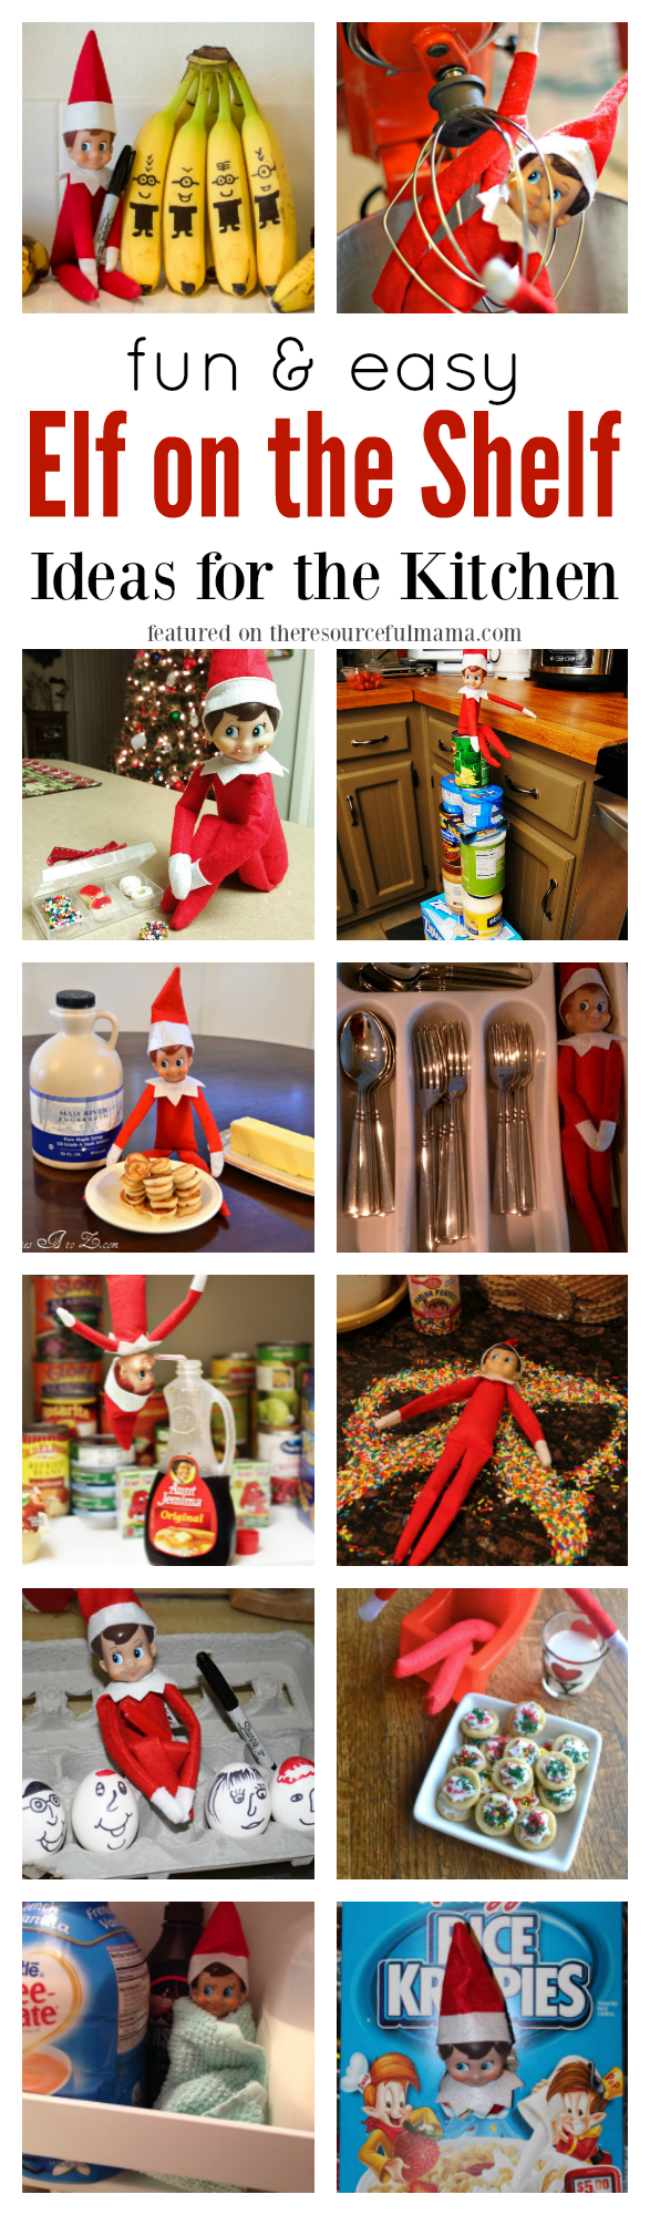 These fun and easy Elf on the Shelf ideas for your kitchen will get you started on planning some fun and mischief for your Elf this Christmas holiday.